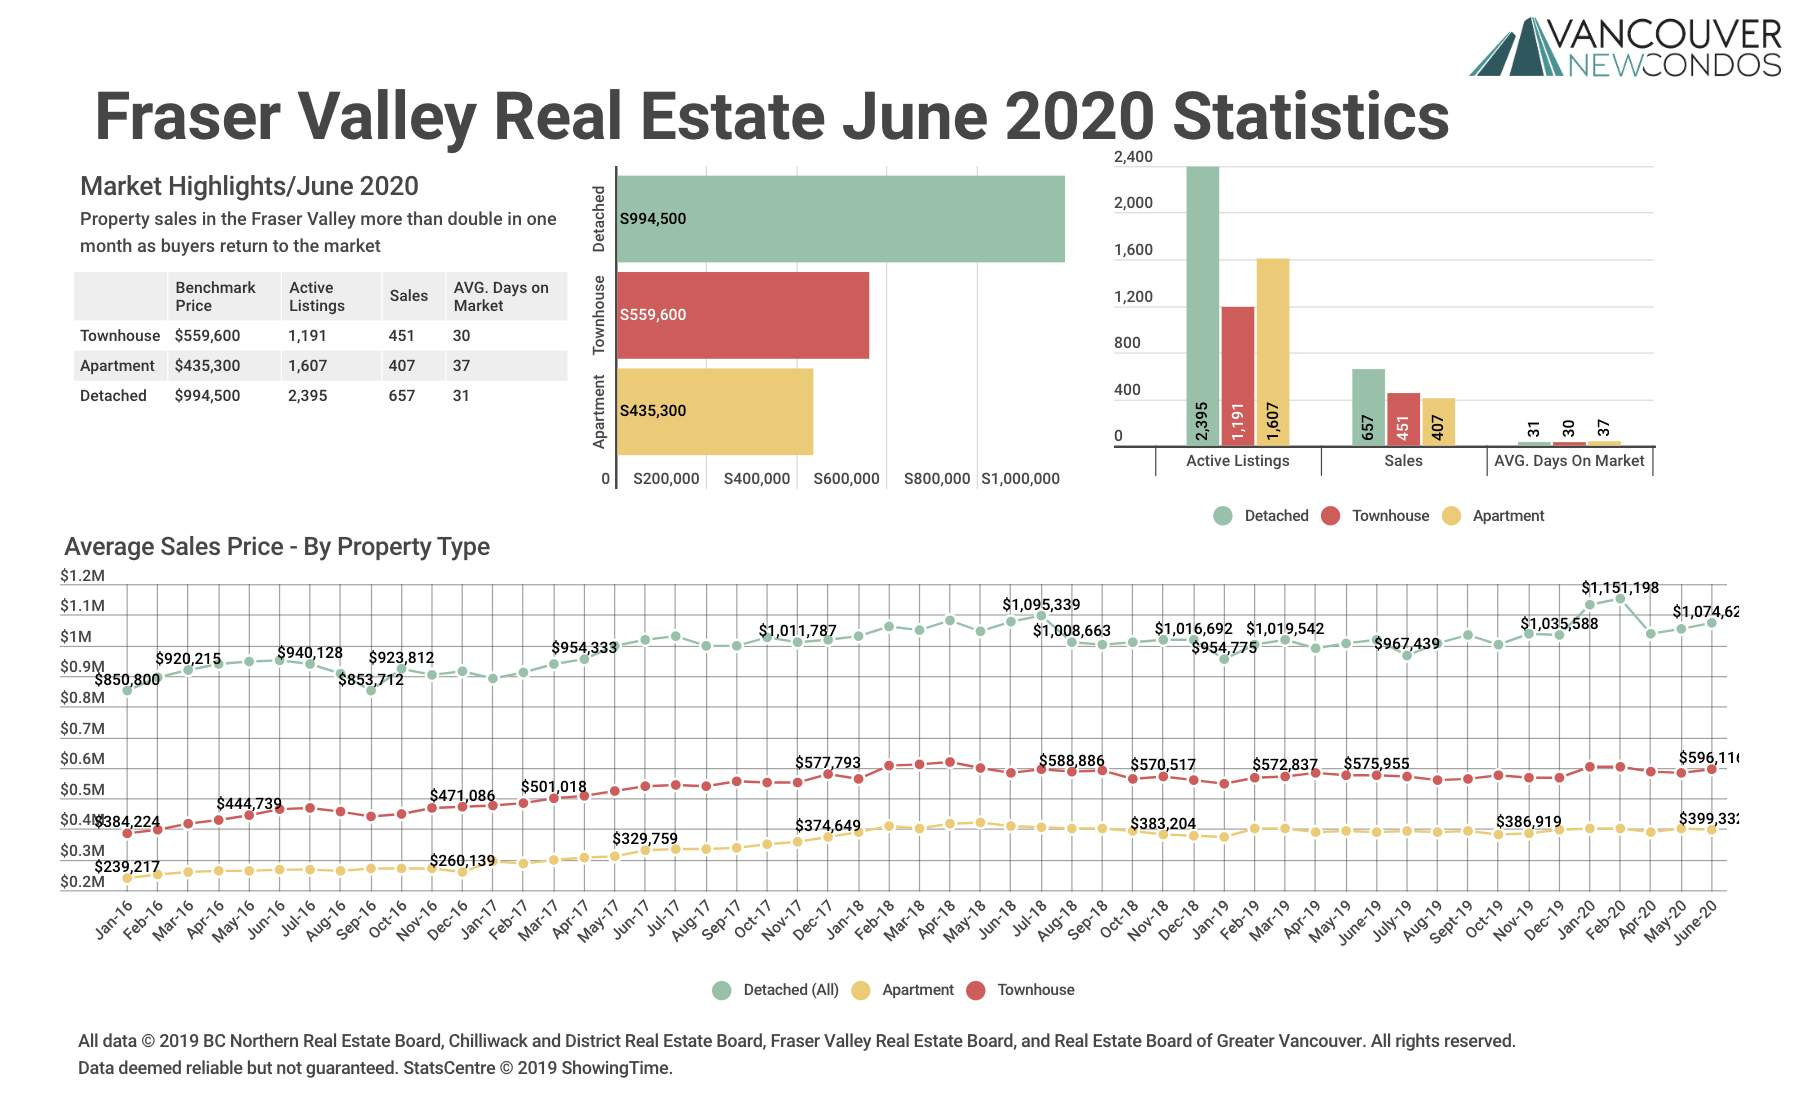 FVREB June 2020 Stats Graph